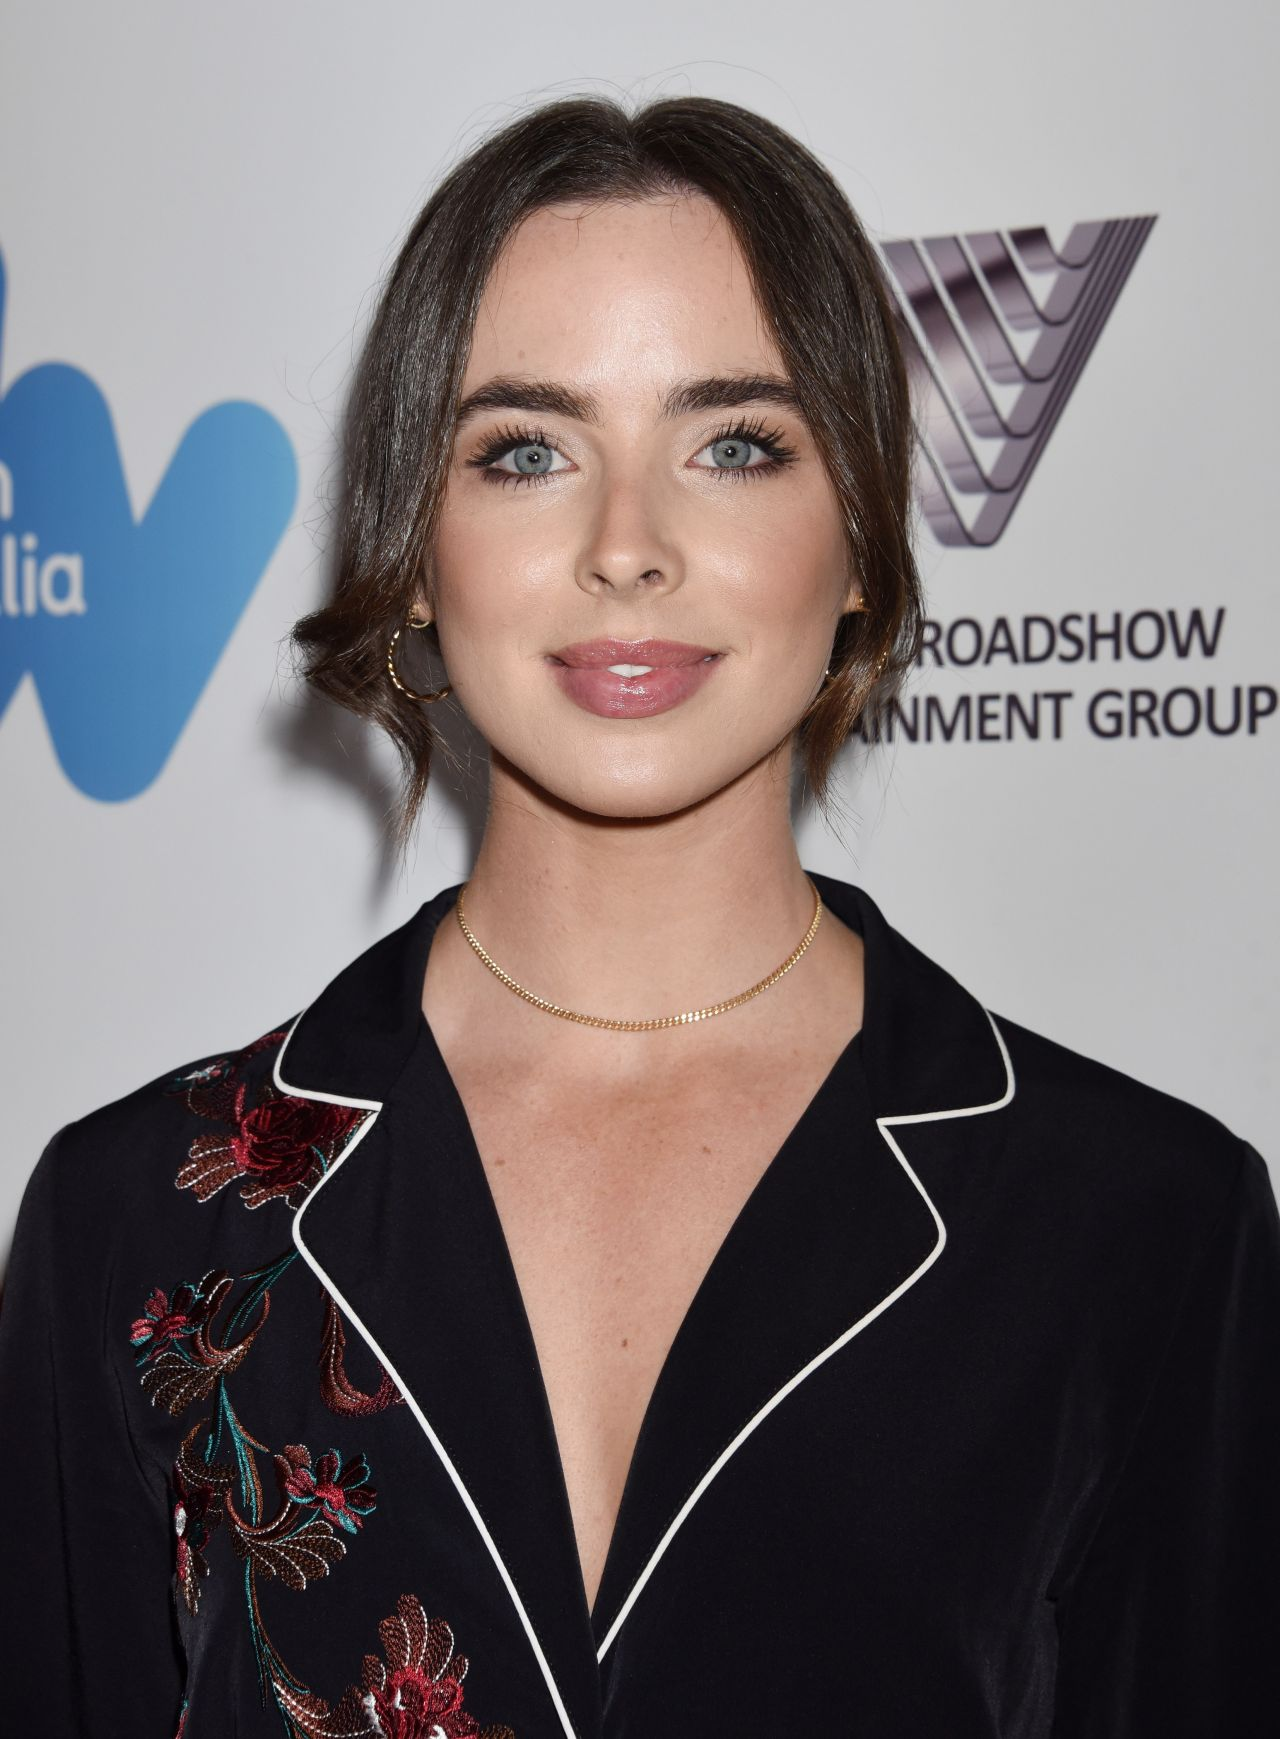 Ashleigh brewer australians in film awards benefit dinner in los angeles naked (78 photo), Tits Celebrites picture